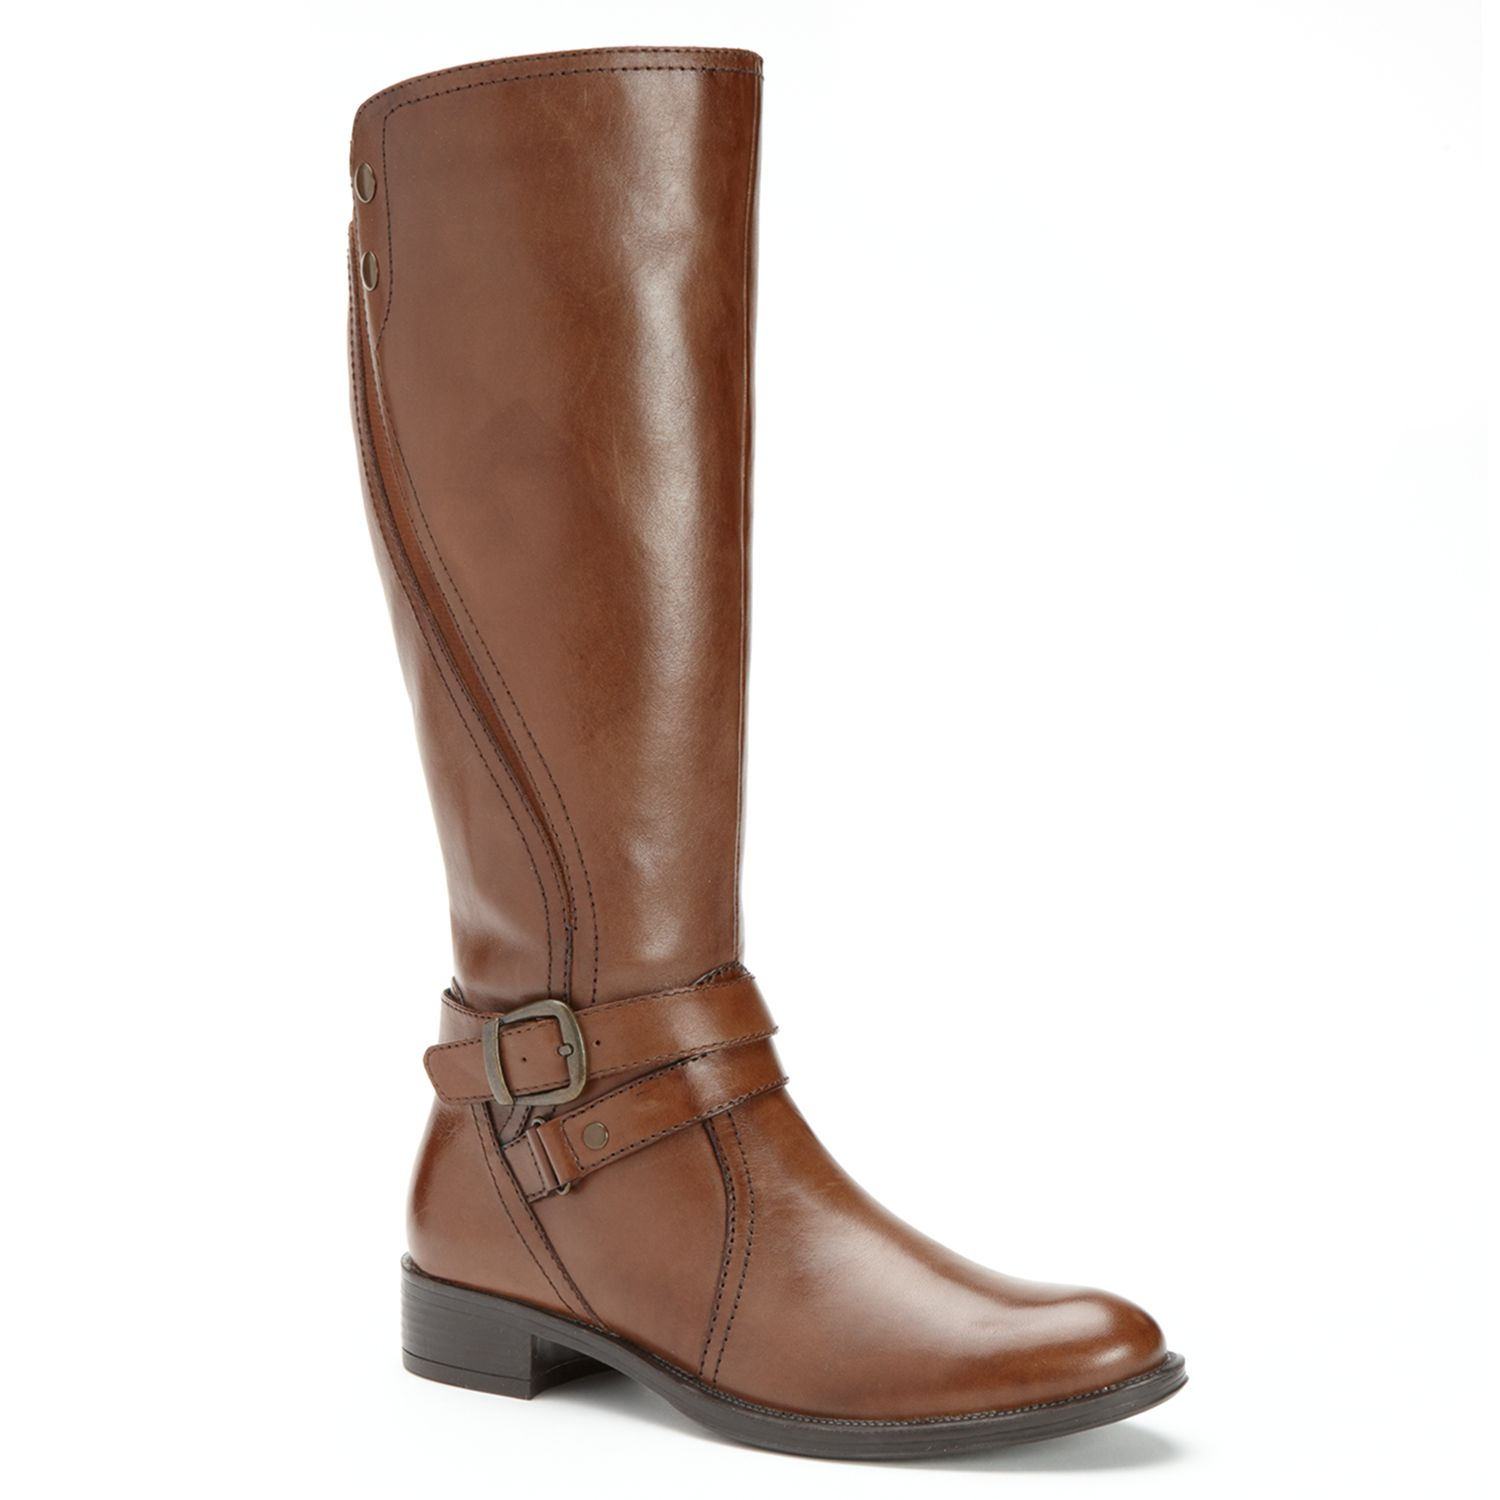 Boots For Women Leather